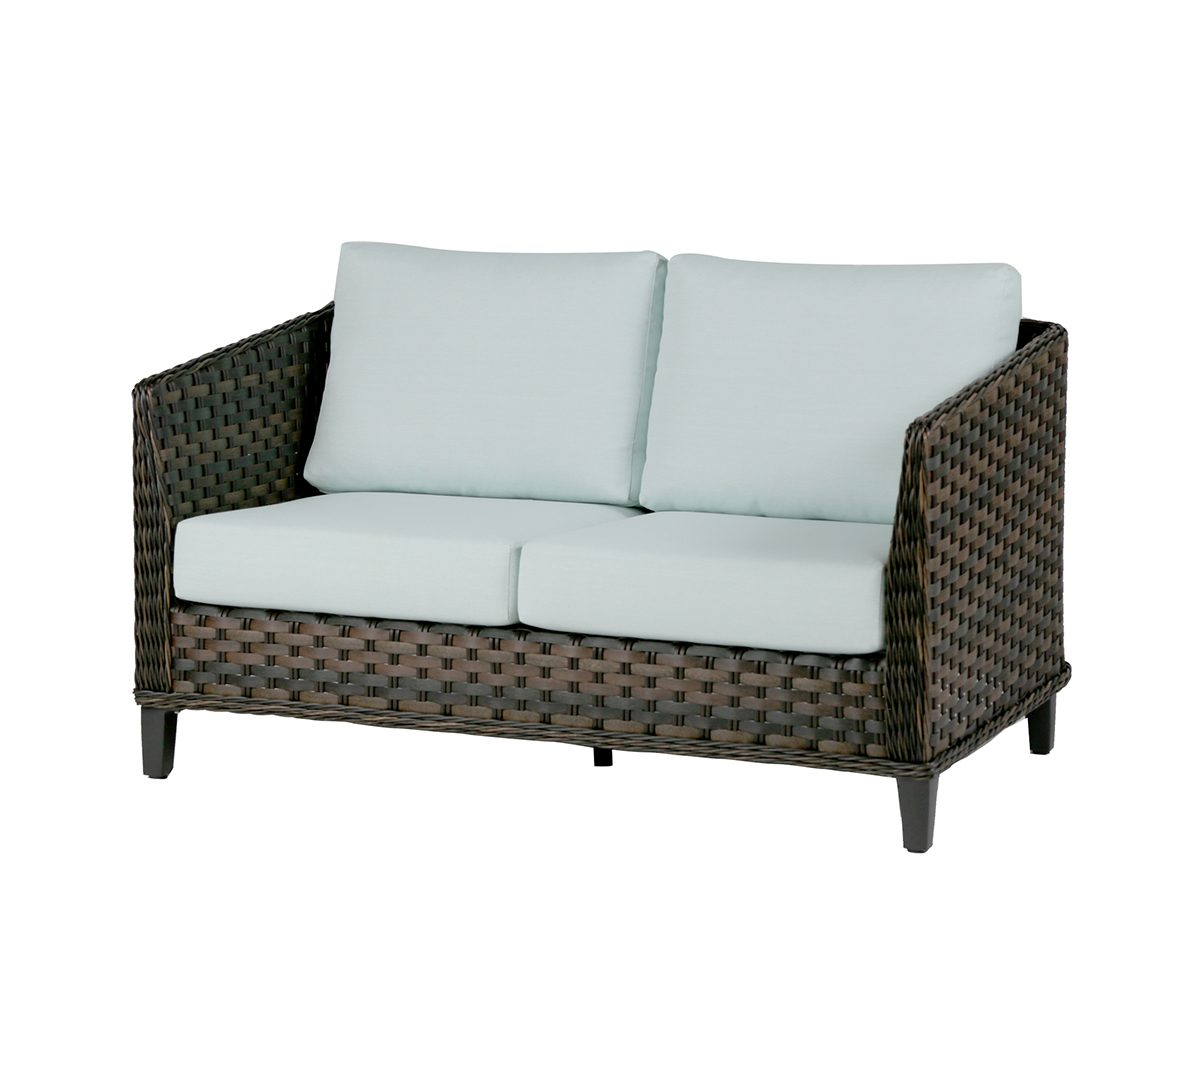 San Sebastian loveseat in brown wicker with light blue cushions.